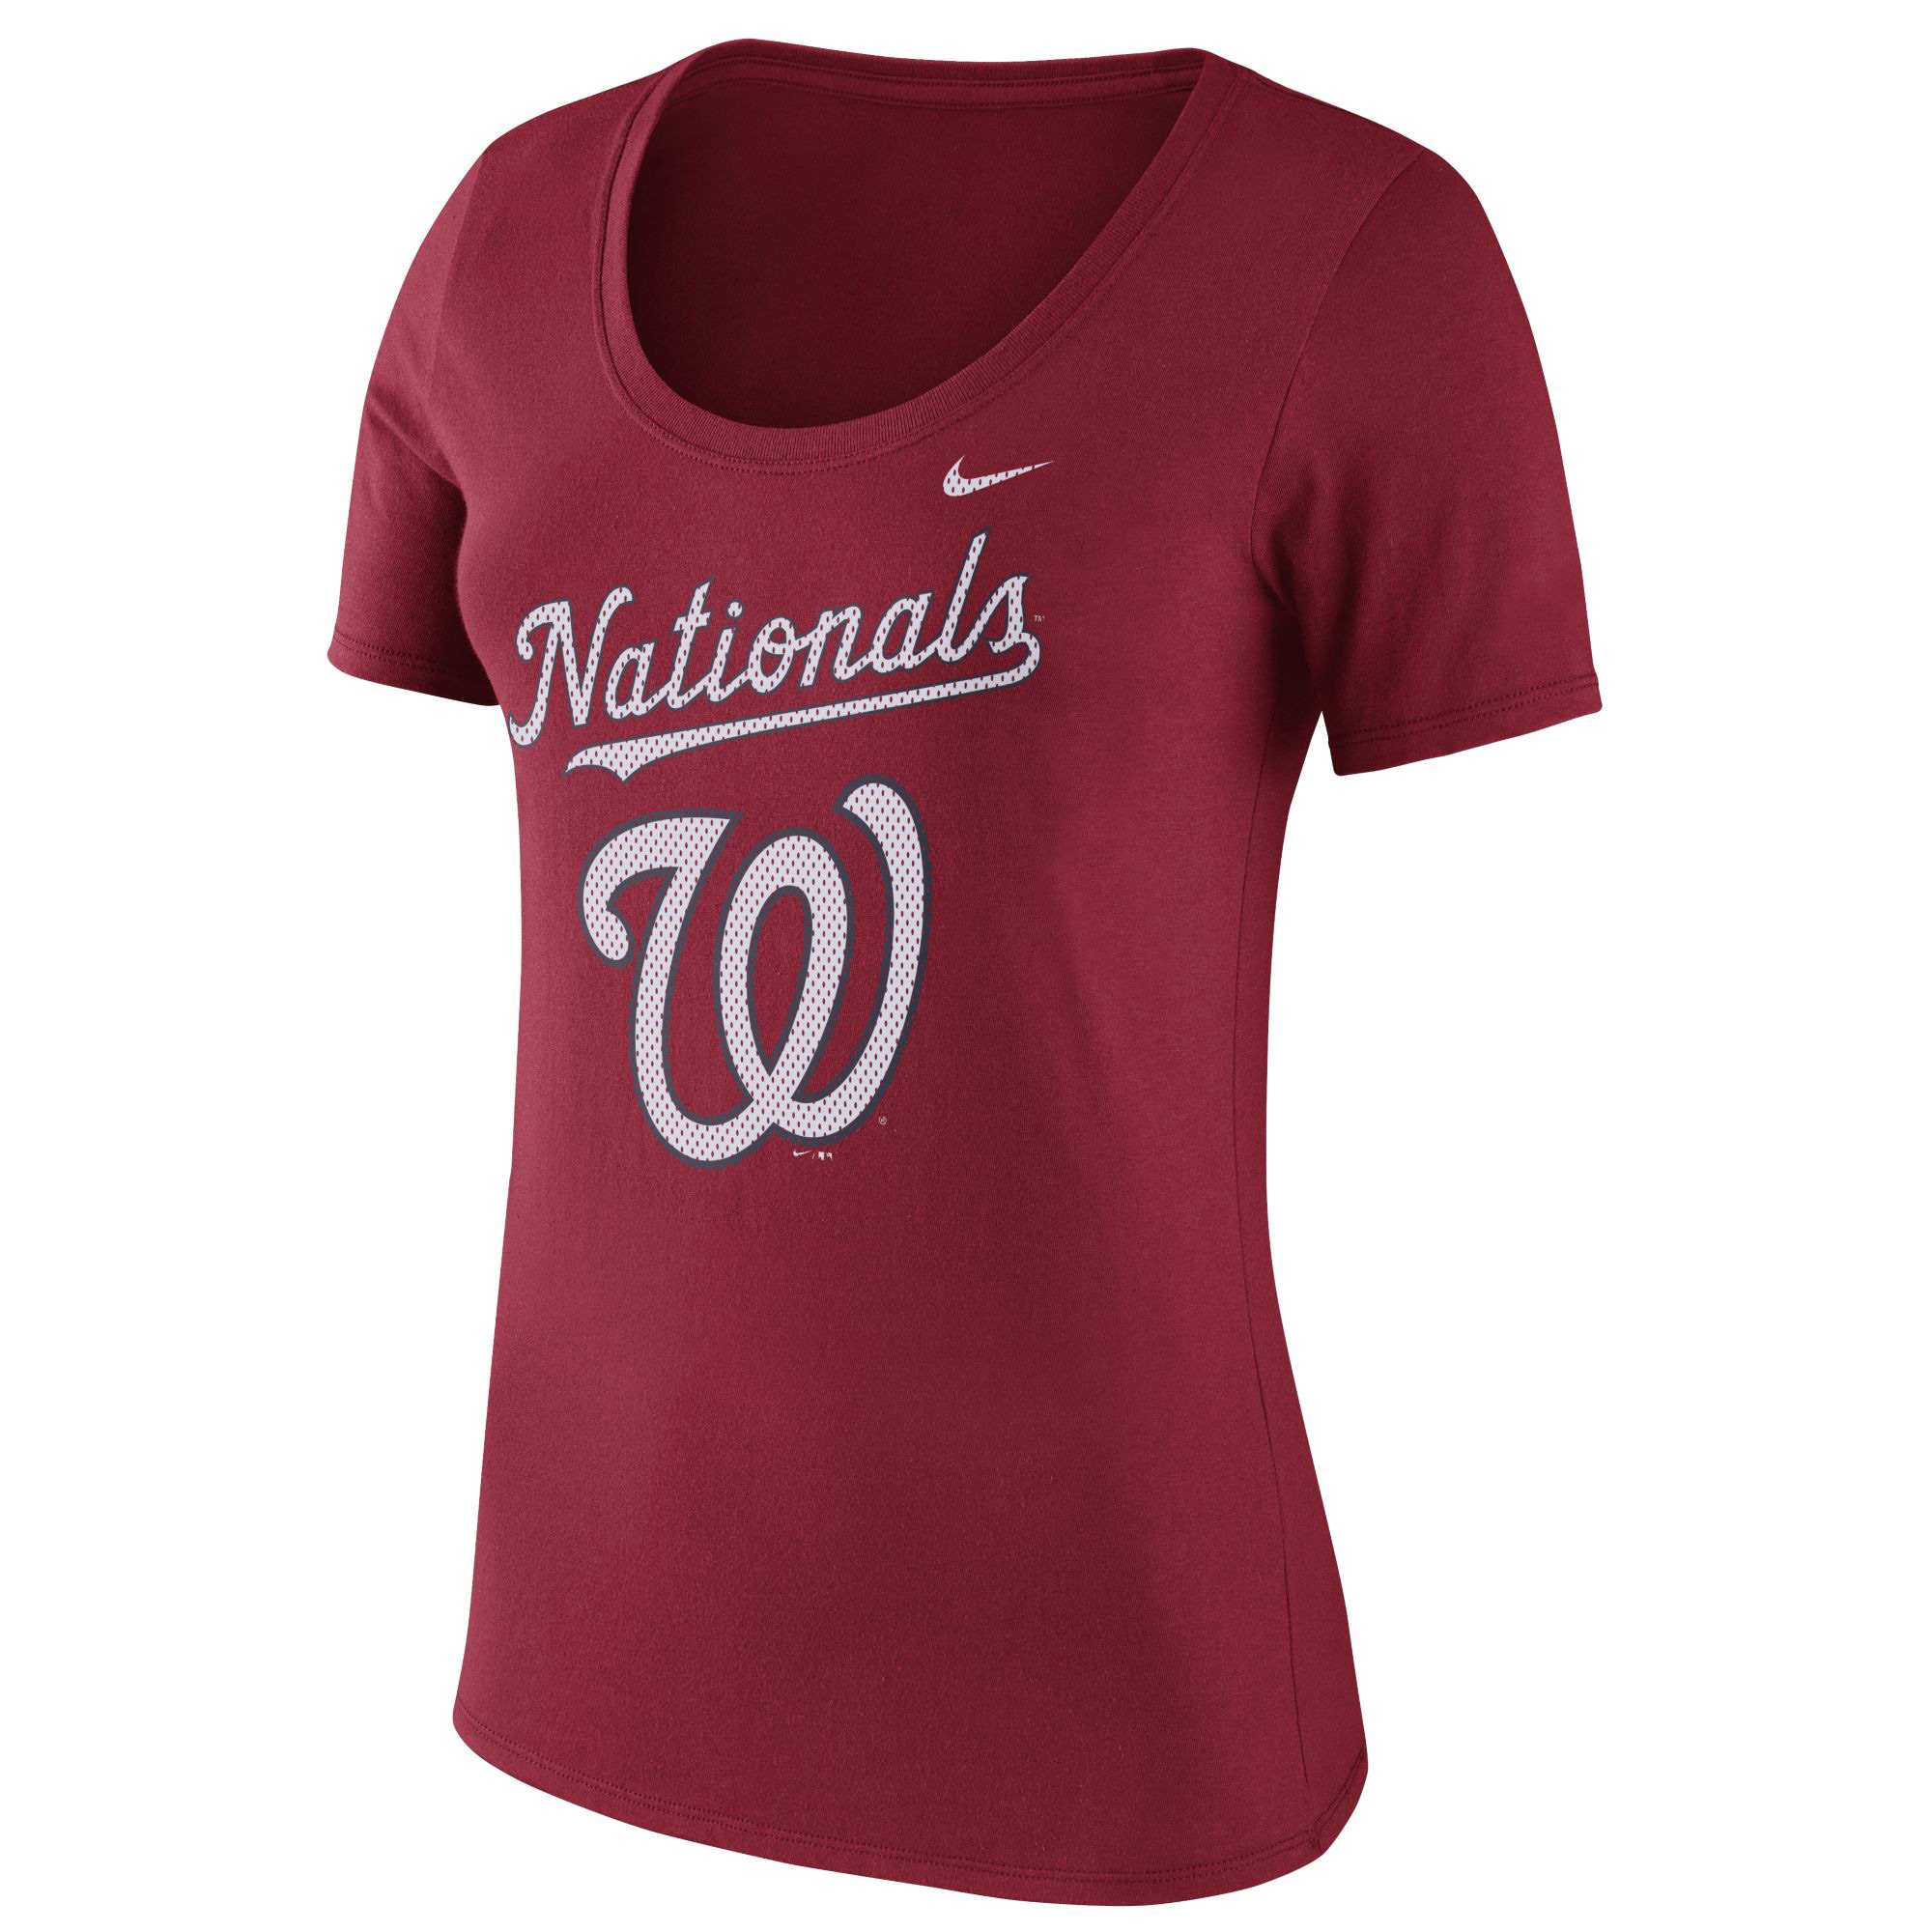 Washington Nationals Nike Women's Core T-Shirt - Red